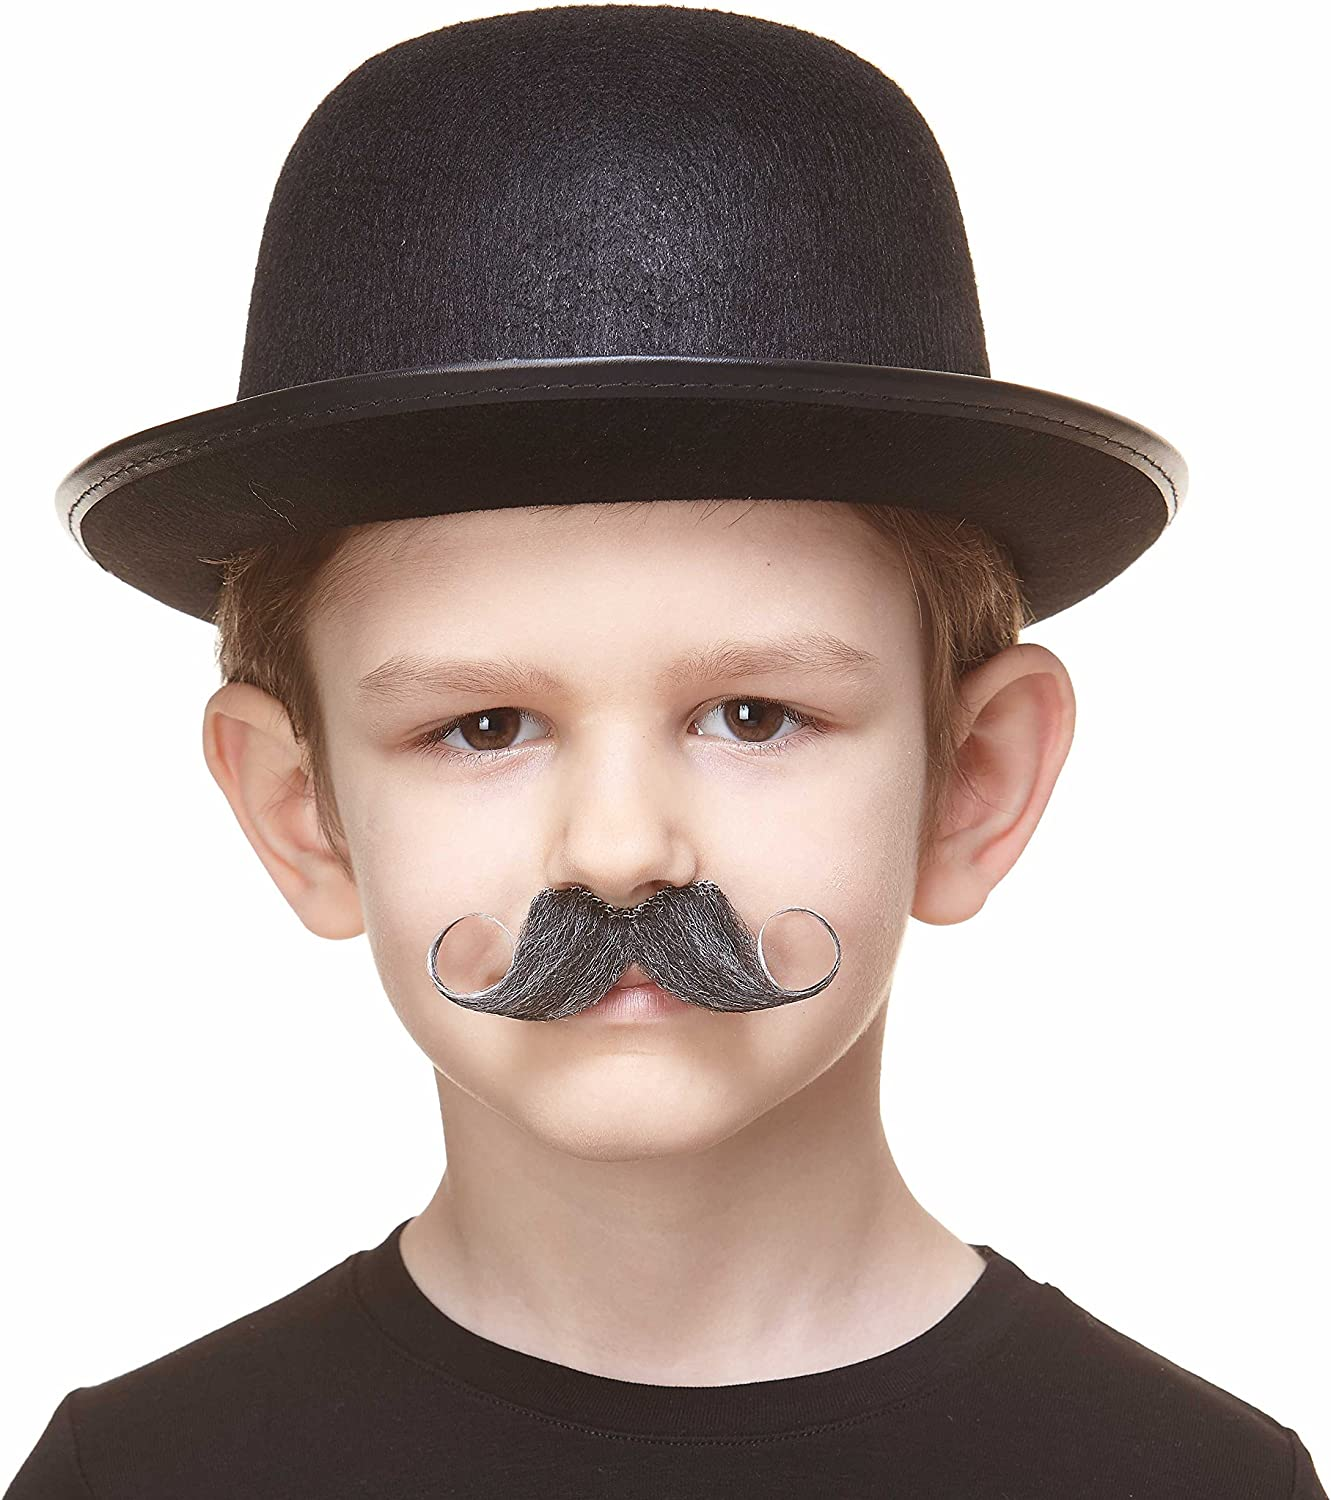 Small Detective False Facial Hair Costume Accessory for Kids Self Adhesive Mustaches Fake Mustache Novelty